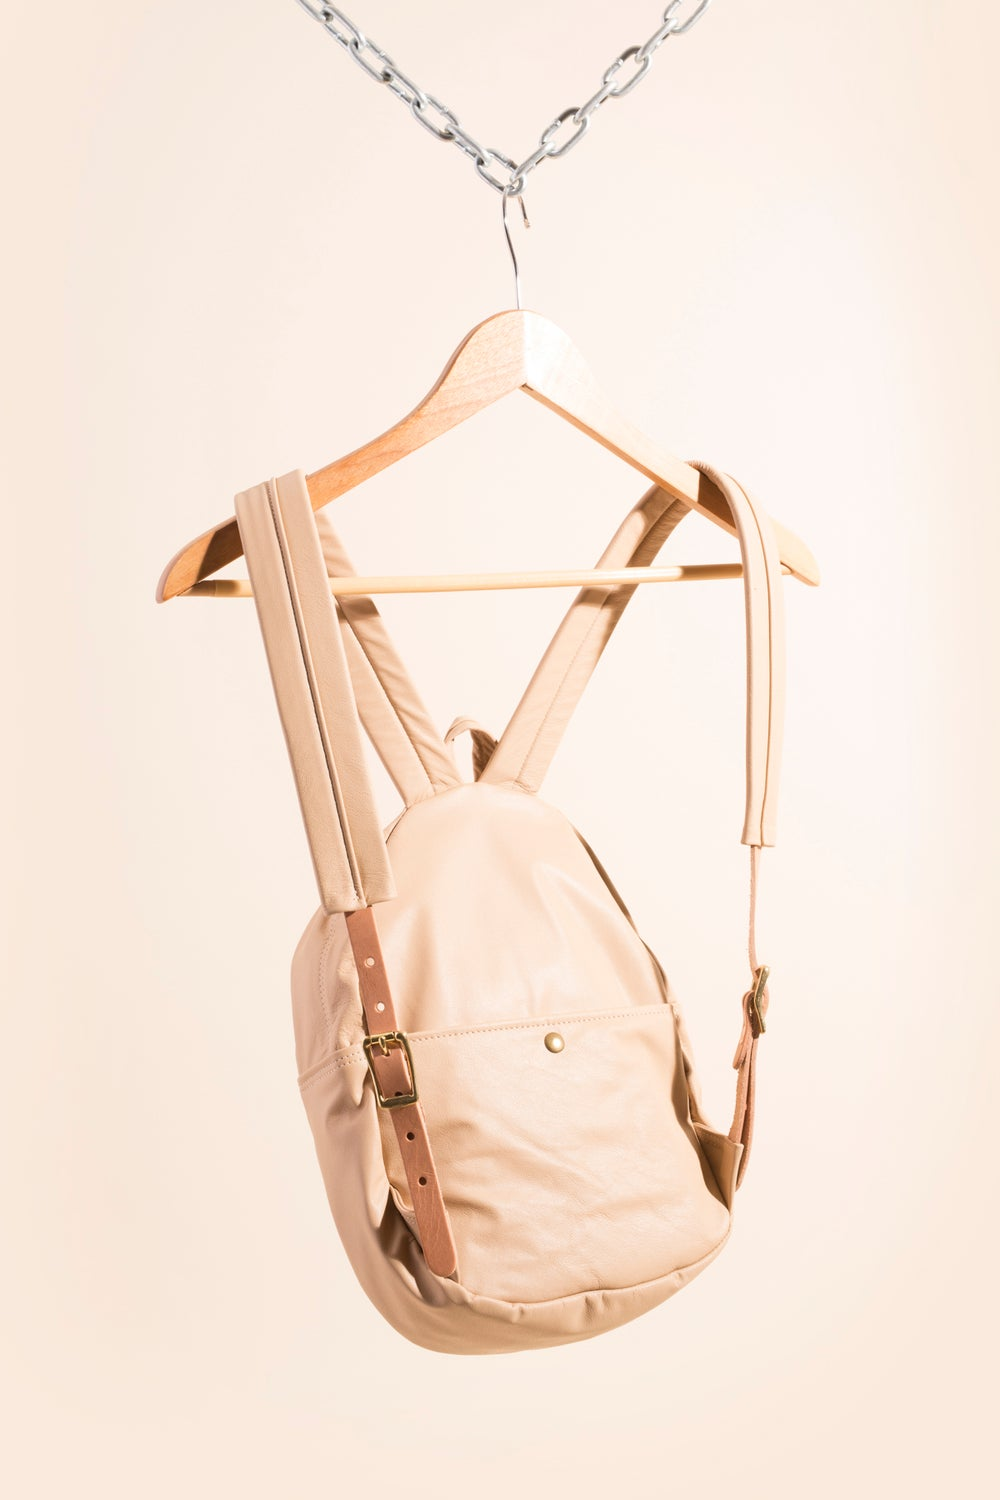 Image of Mini Backpack - Nude Leather